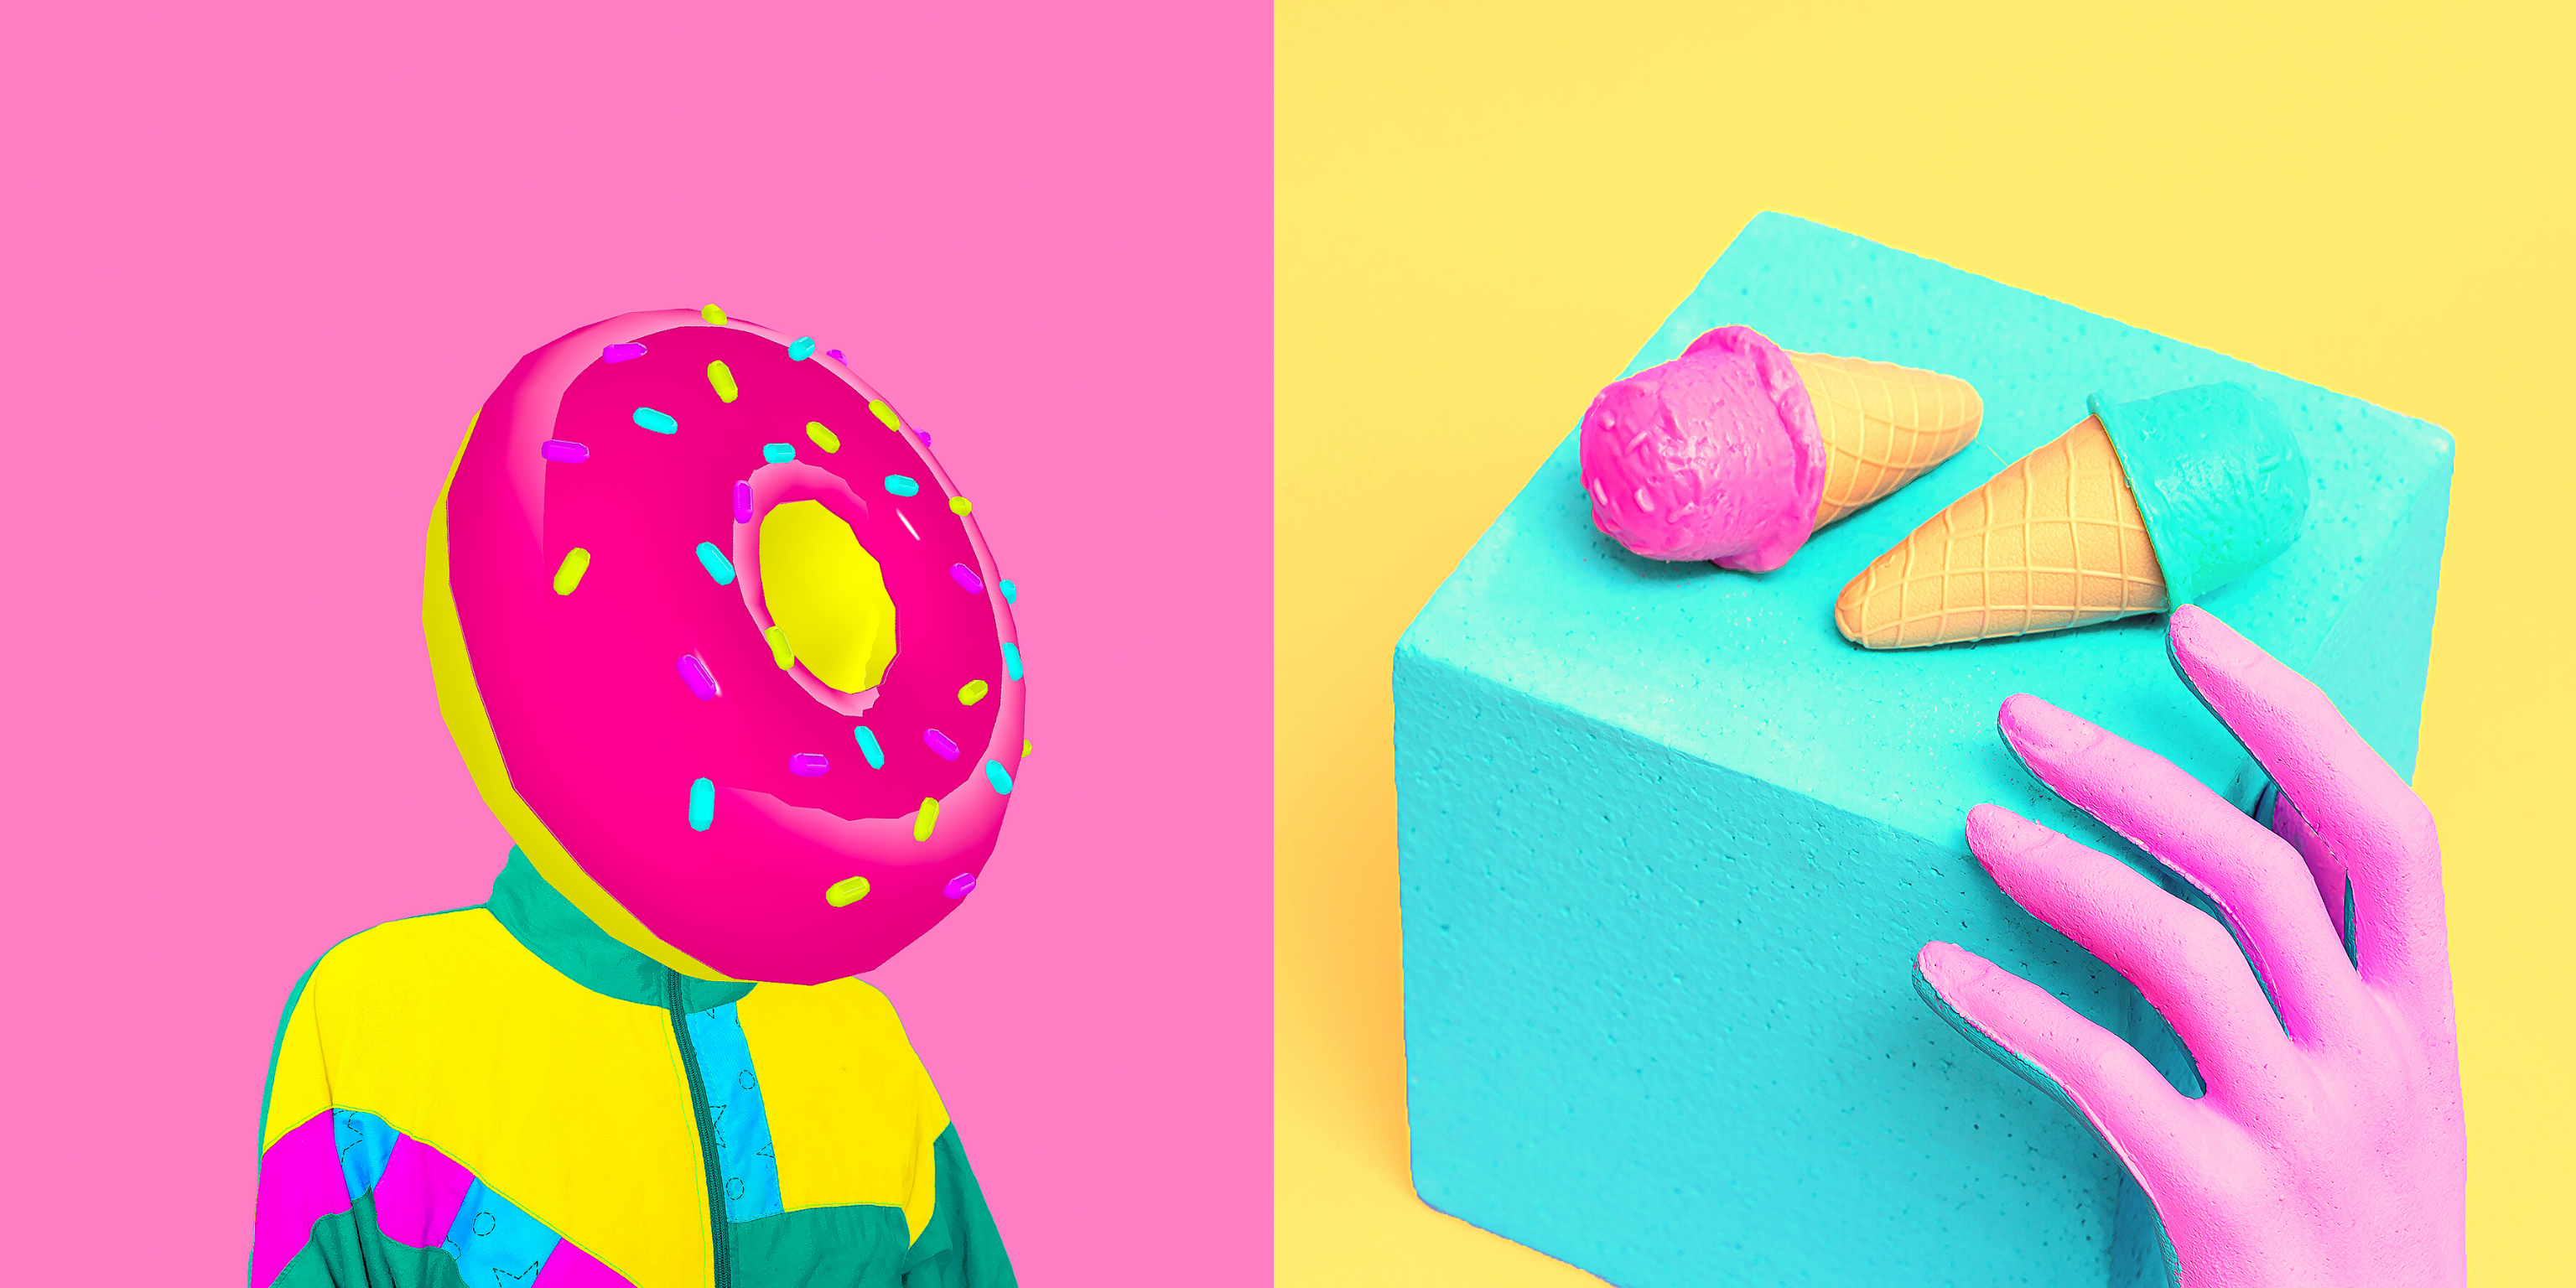 Candy art: a donut for a head, and a hand reaching for candy ice cream cones